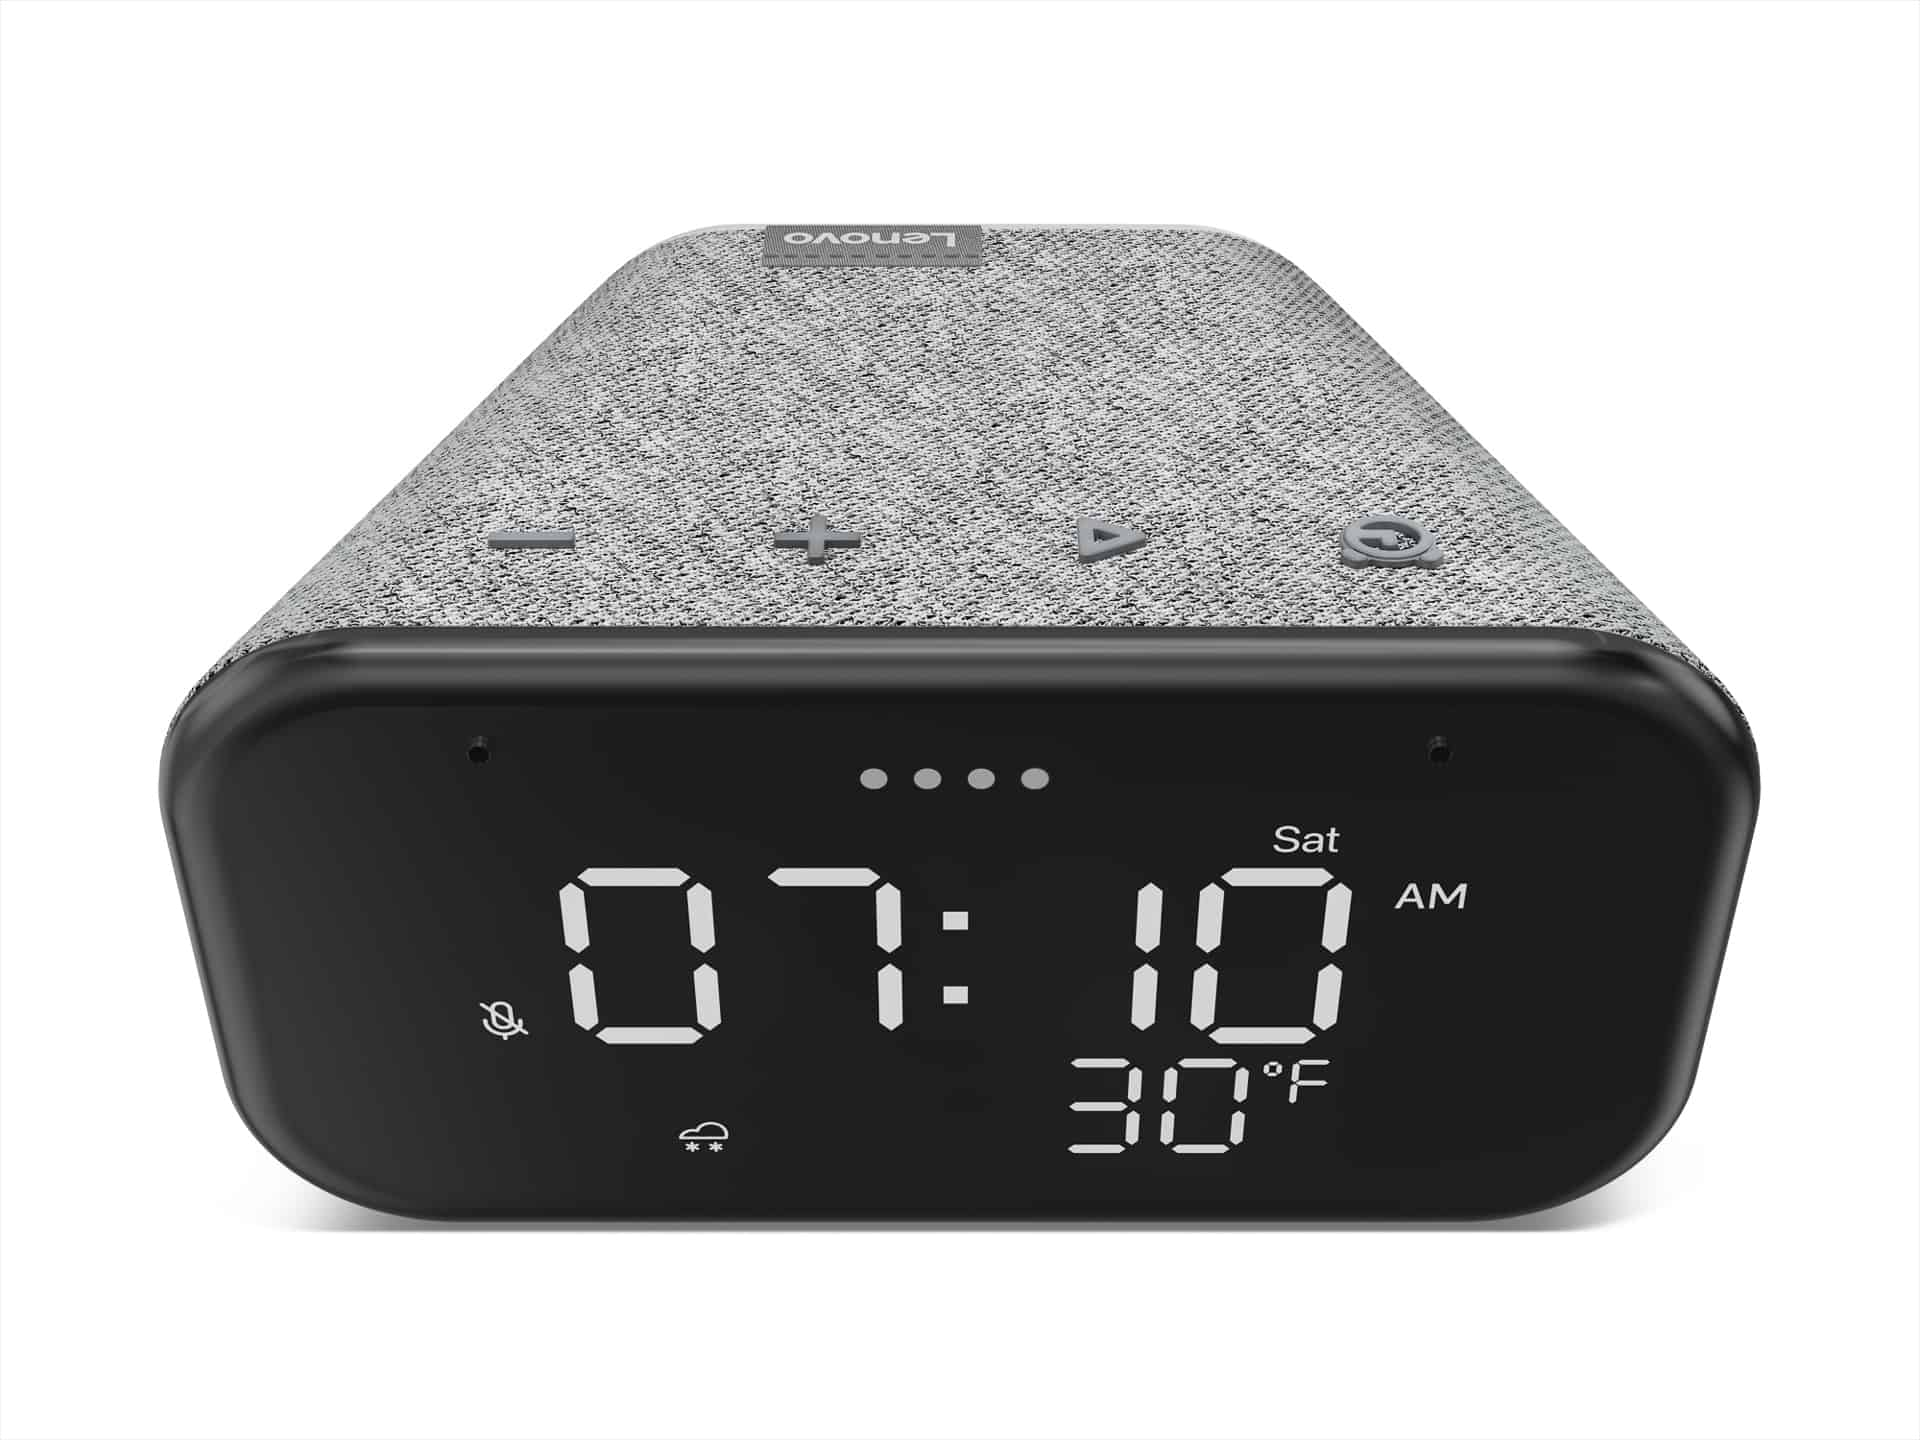 03B Smart Clock Essential Tour Birdeye Weather